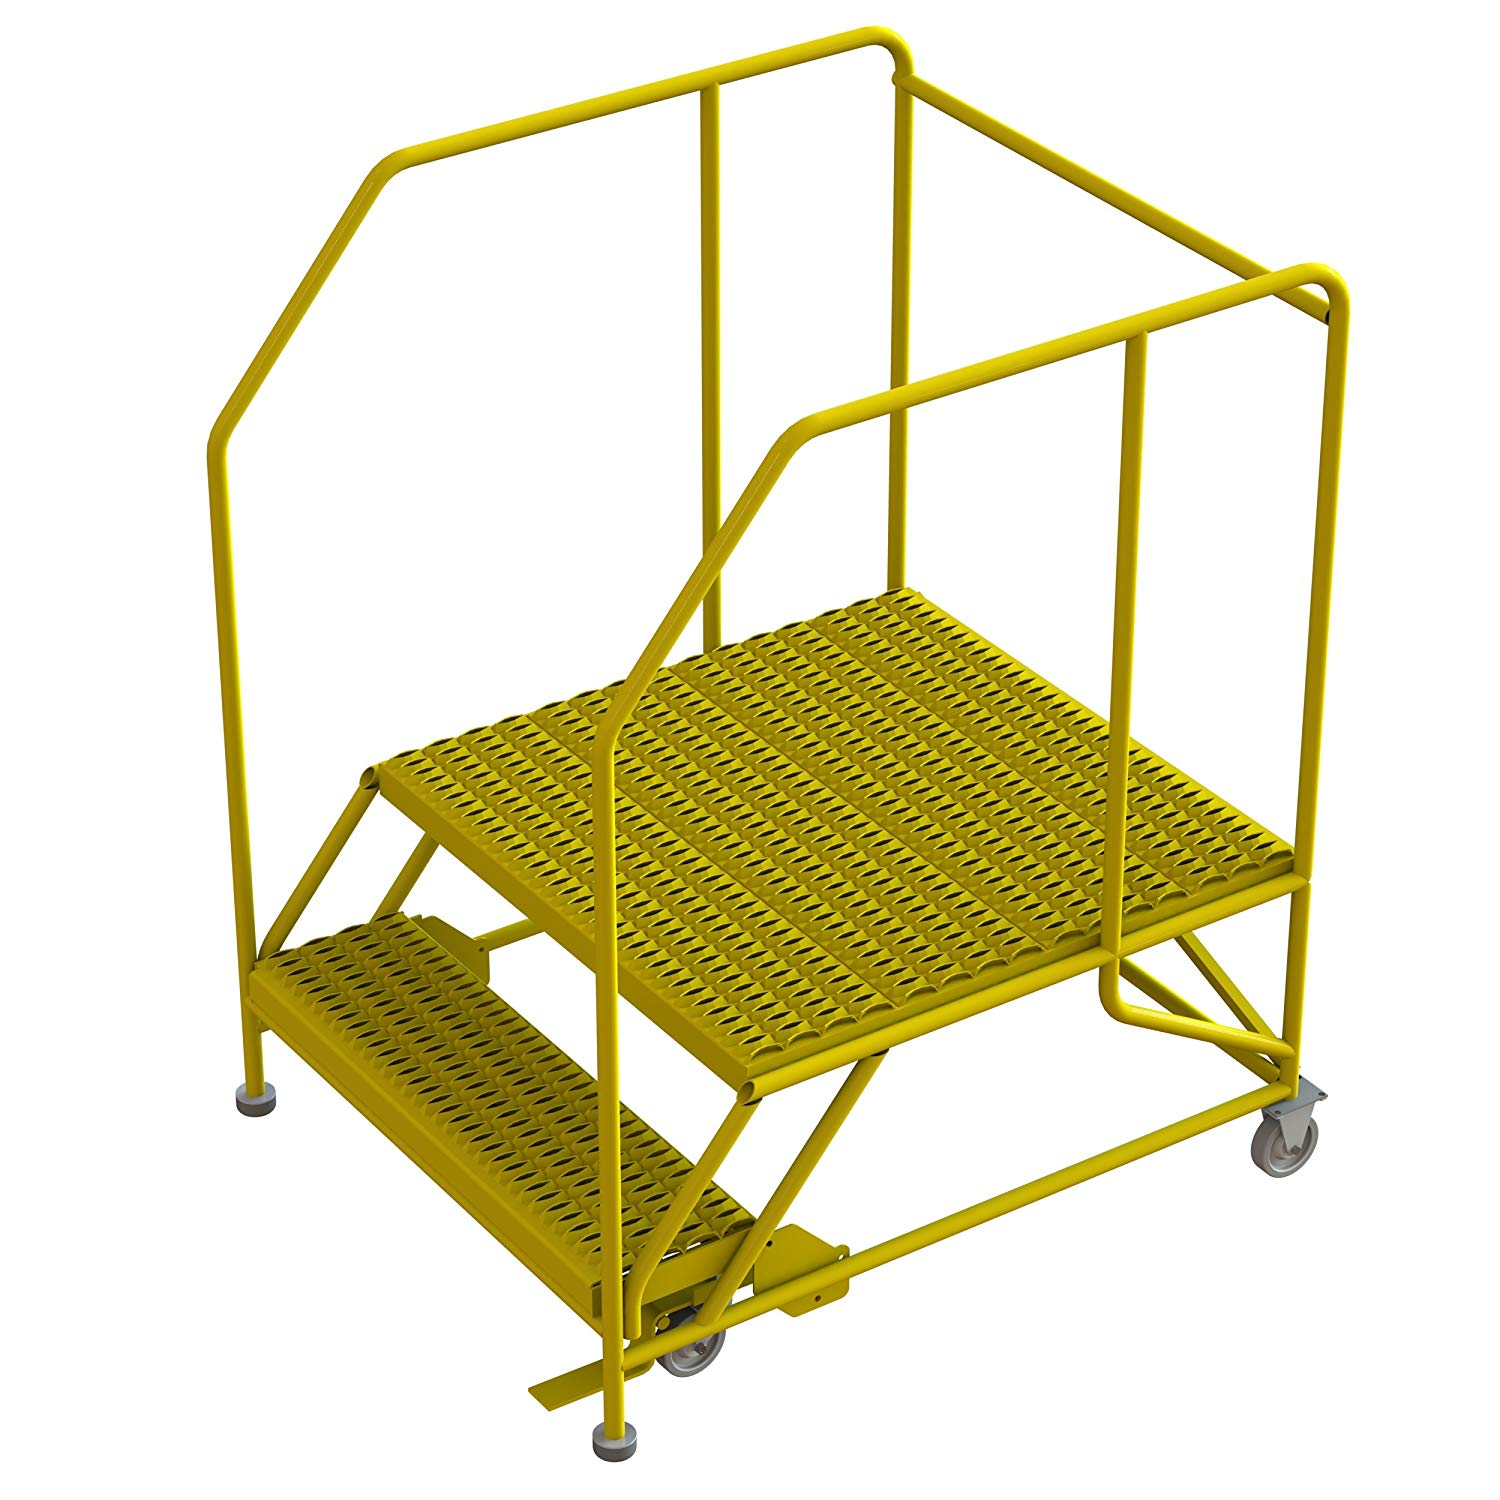 "Tri-Arc WLWP123636SL-Y 2-Step Forward Descent Mobile Steel Work Platform with Handrails, Step Lock, 36"" x 36"" Platform, SAFETY Yellow Powder Coated Finish, 56"" Height, 42"" width, 46"" Length"